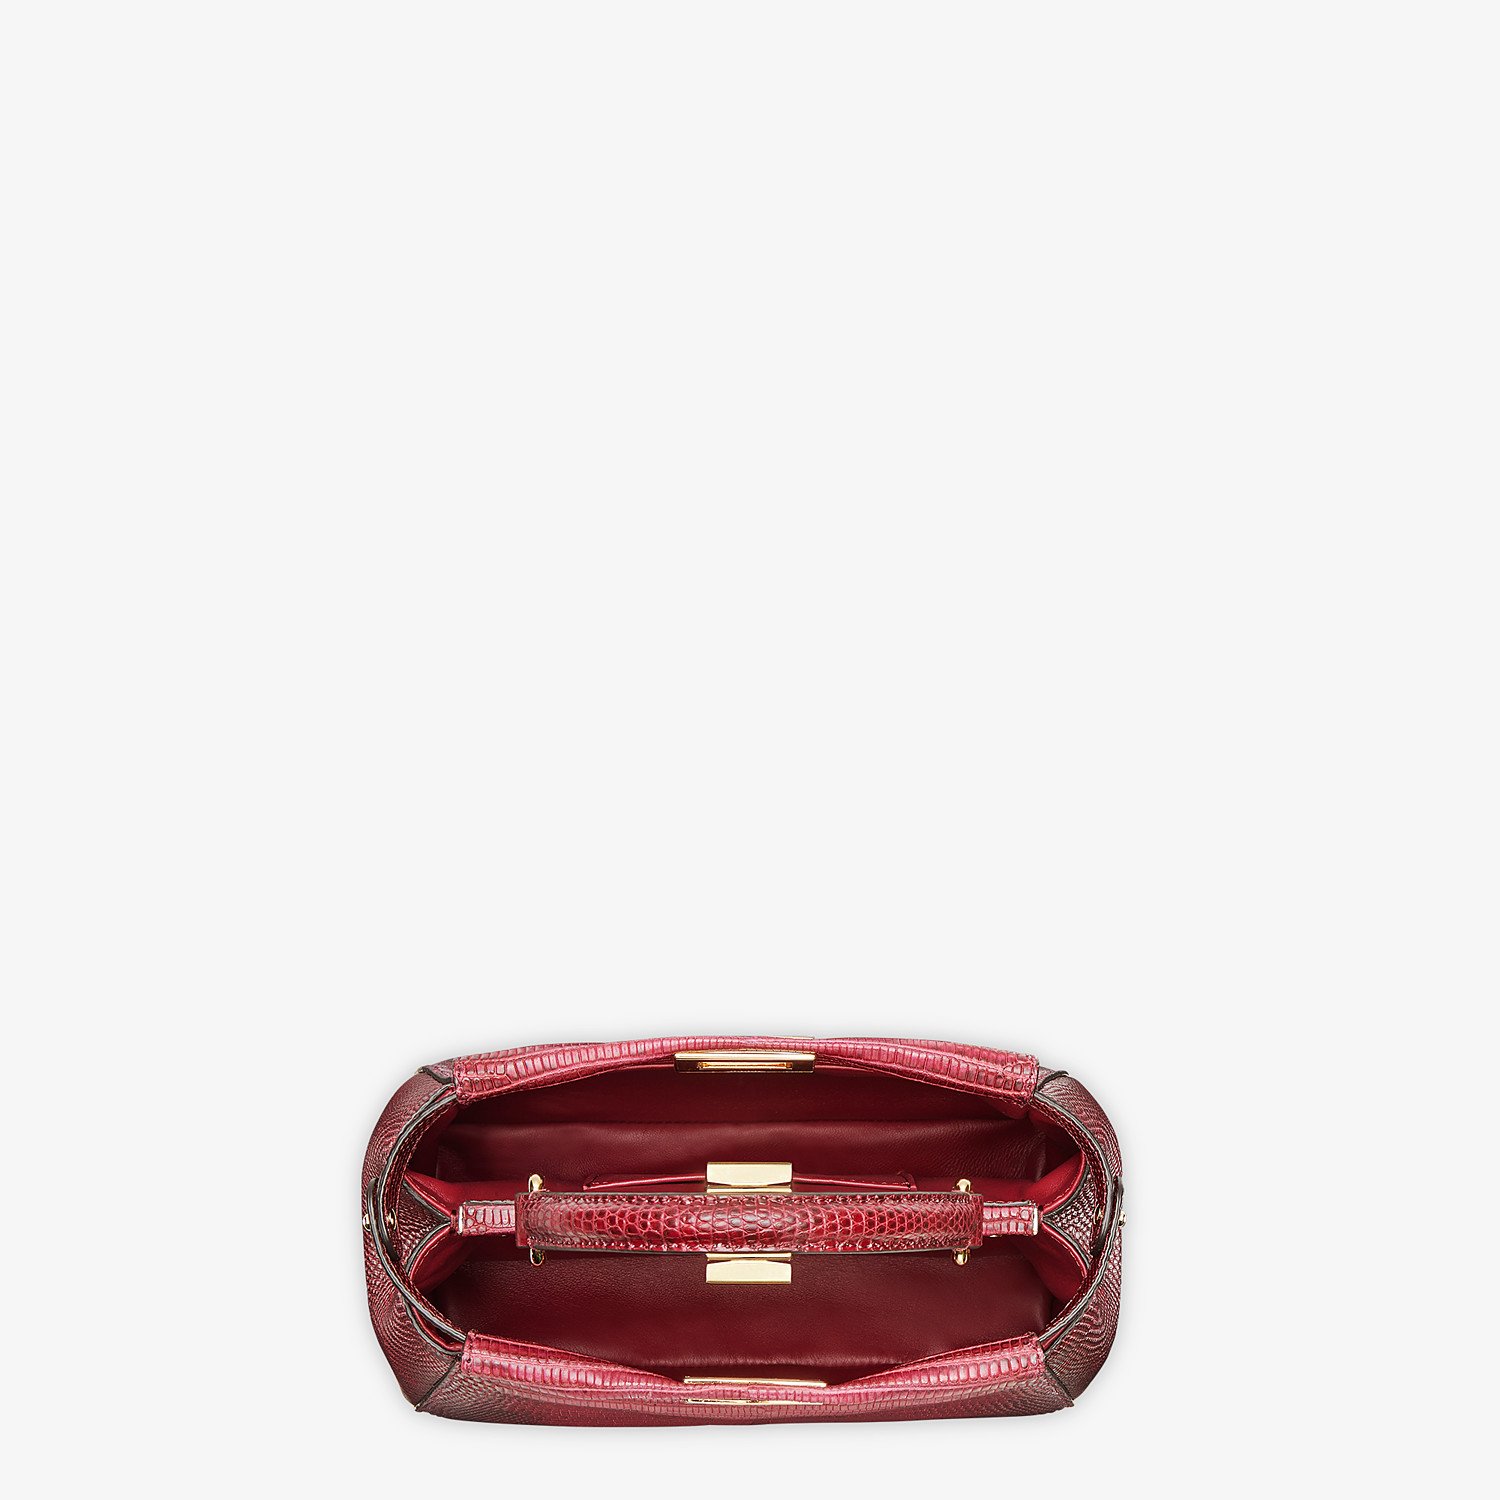 FENDI PEEKABOO ICONIC MINI - Lizard skin bag - view 4 detail